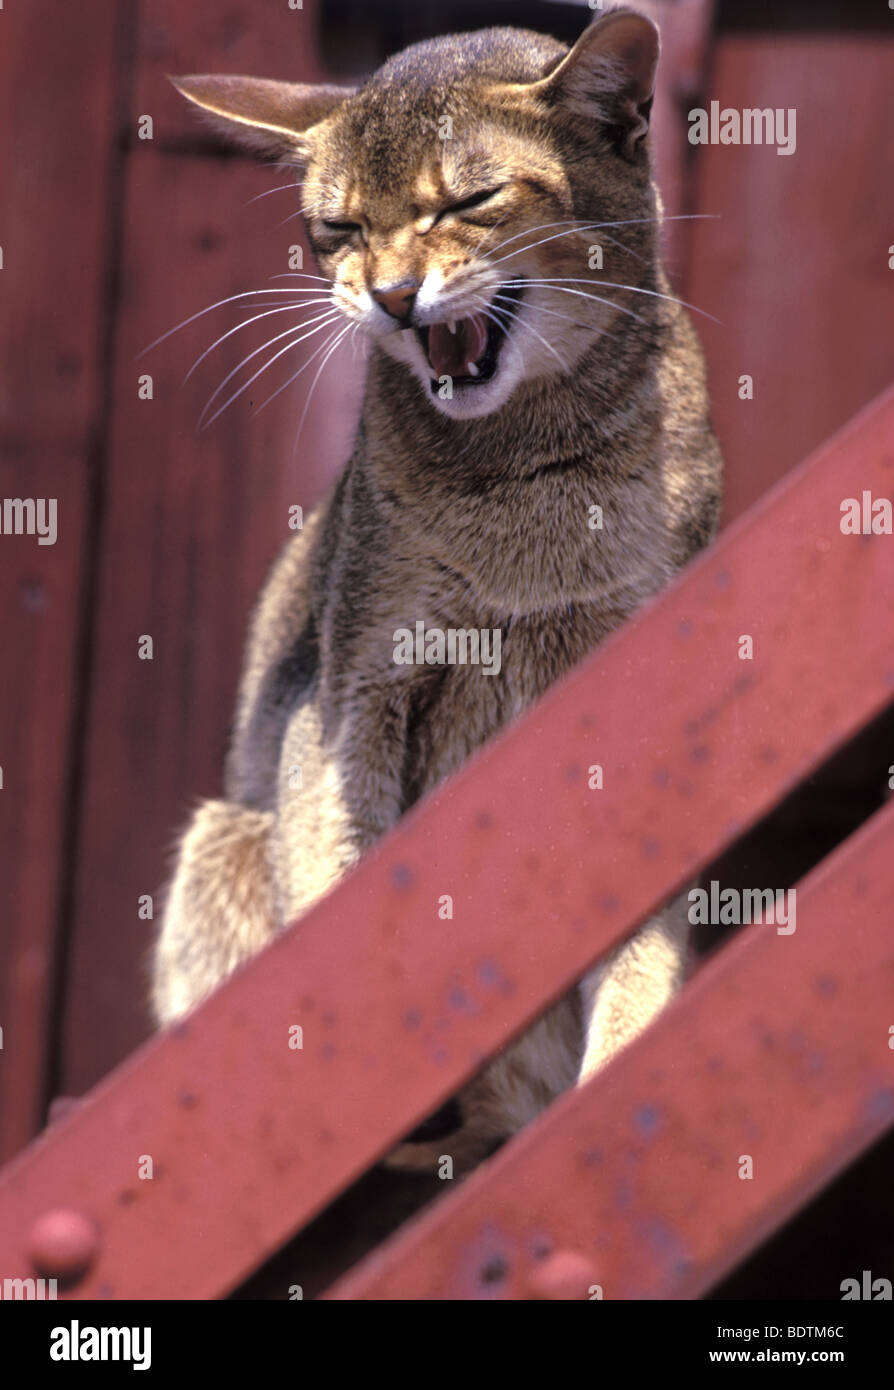 Cat meowing - Stock Image